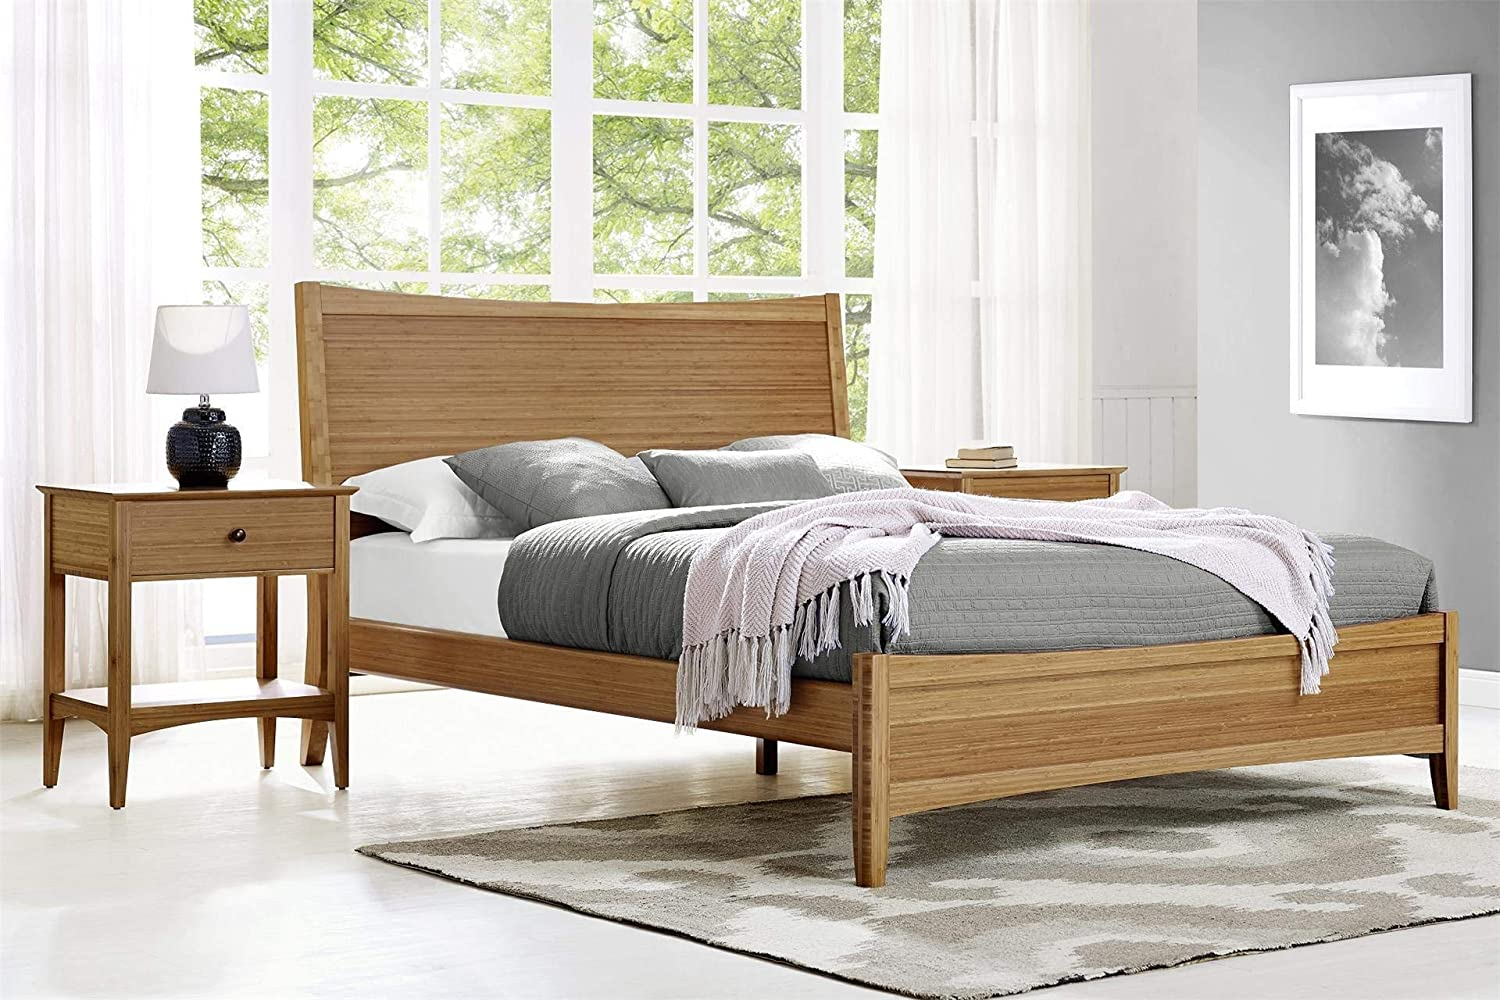 Amazon.com - Greenington Willow 3-Piece Bamboo Bedroom Set - Modern ...